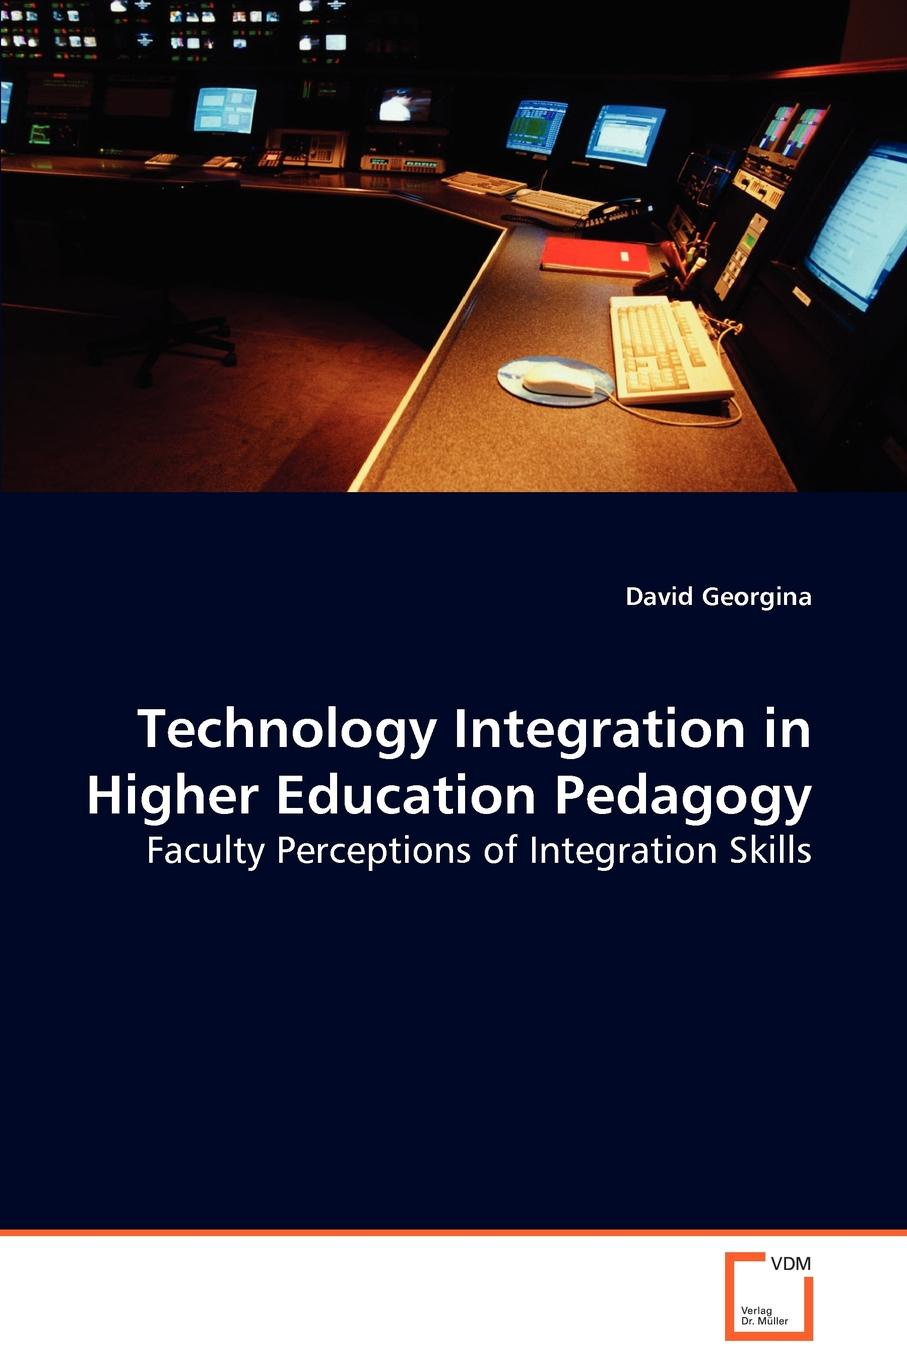 David Georgina Technology Integration in Higher Education Pedagogy david unwin teaching geographic information science and technology in higher education